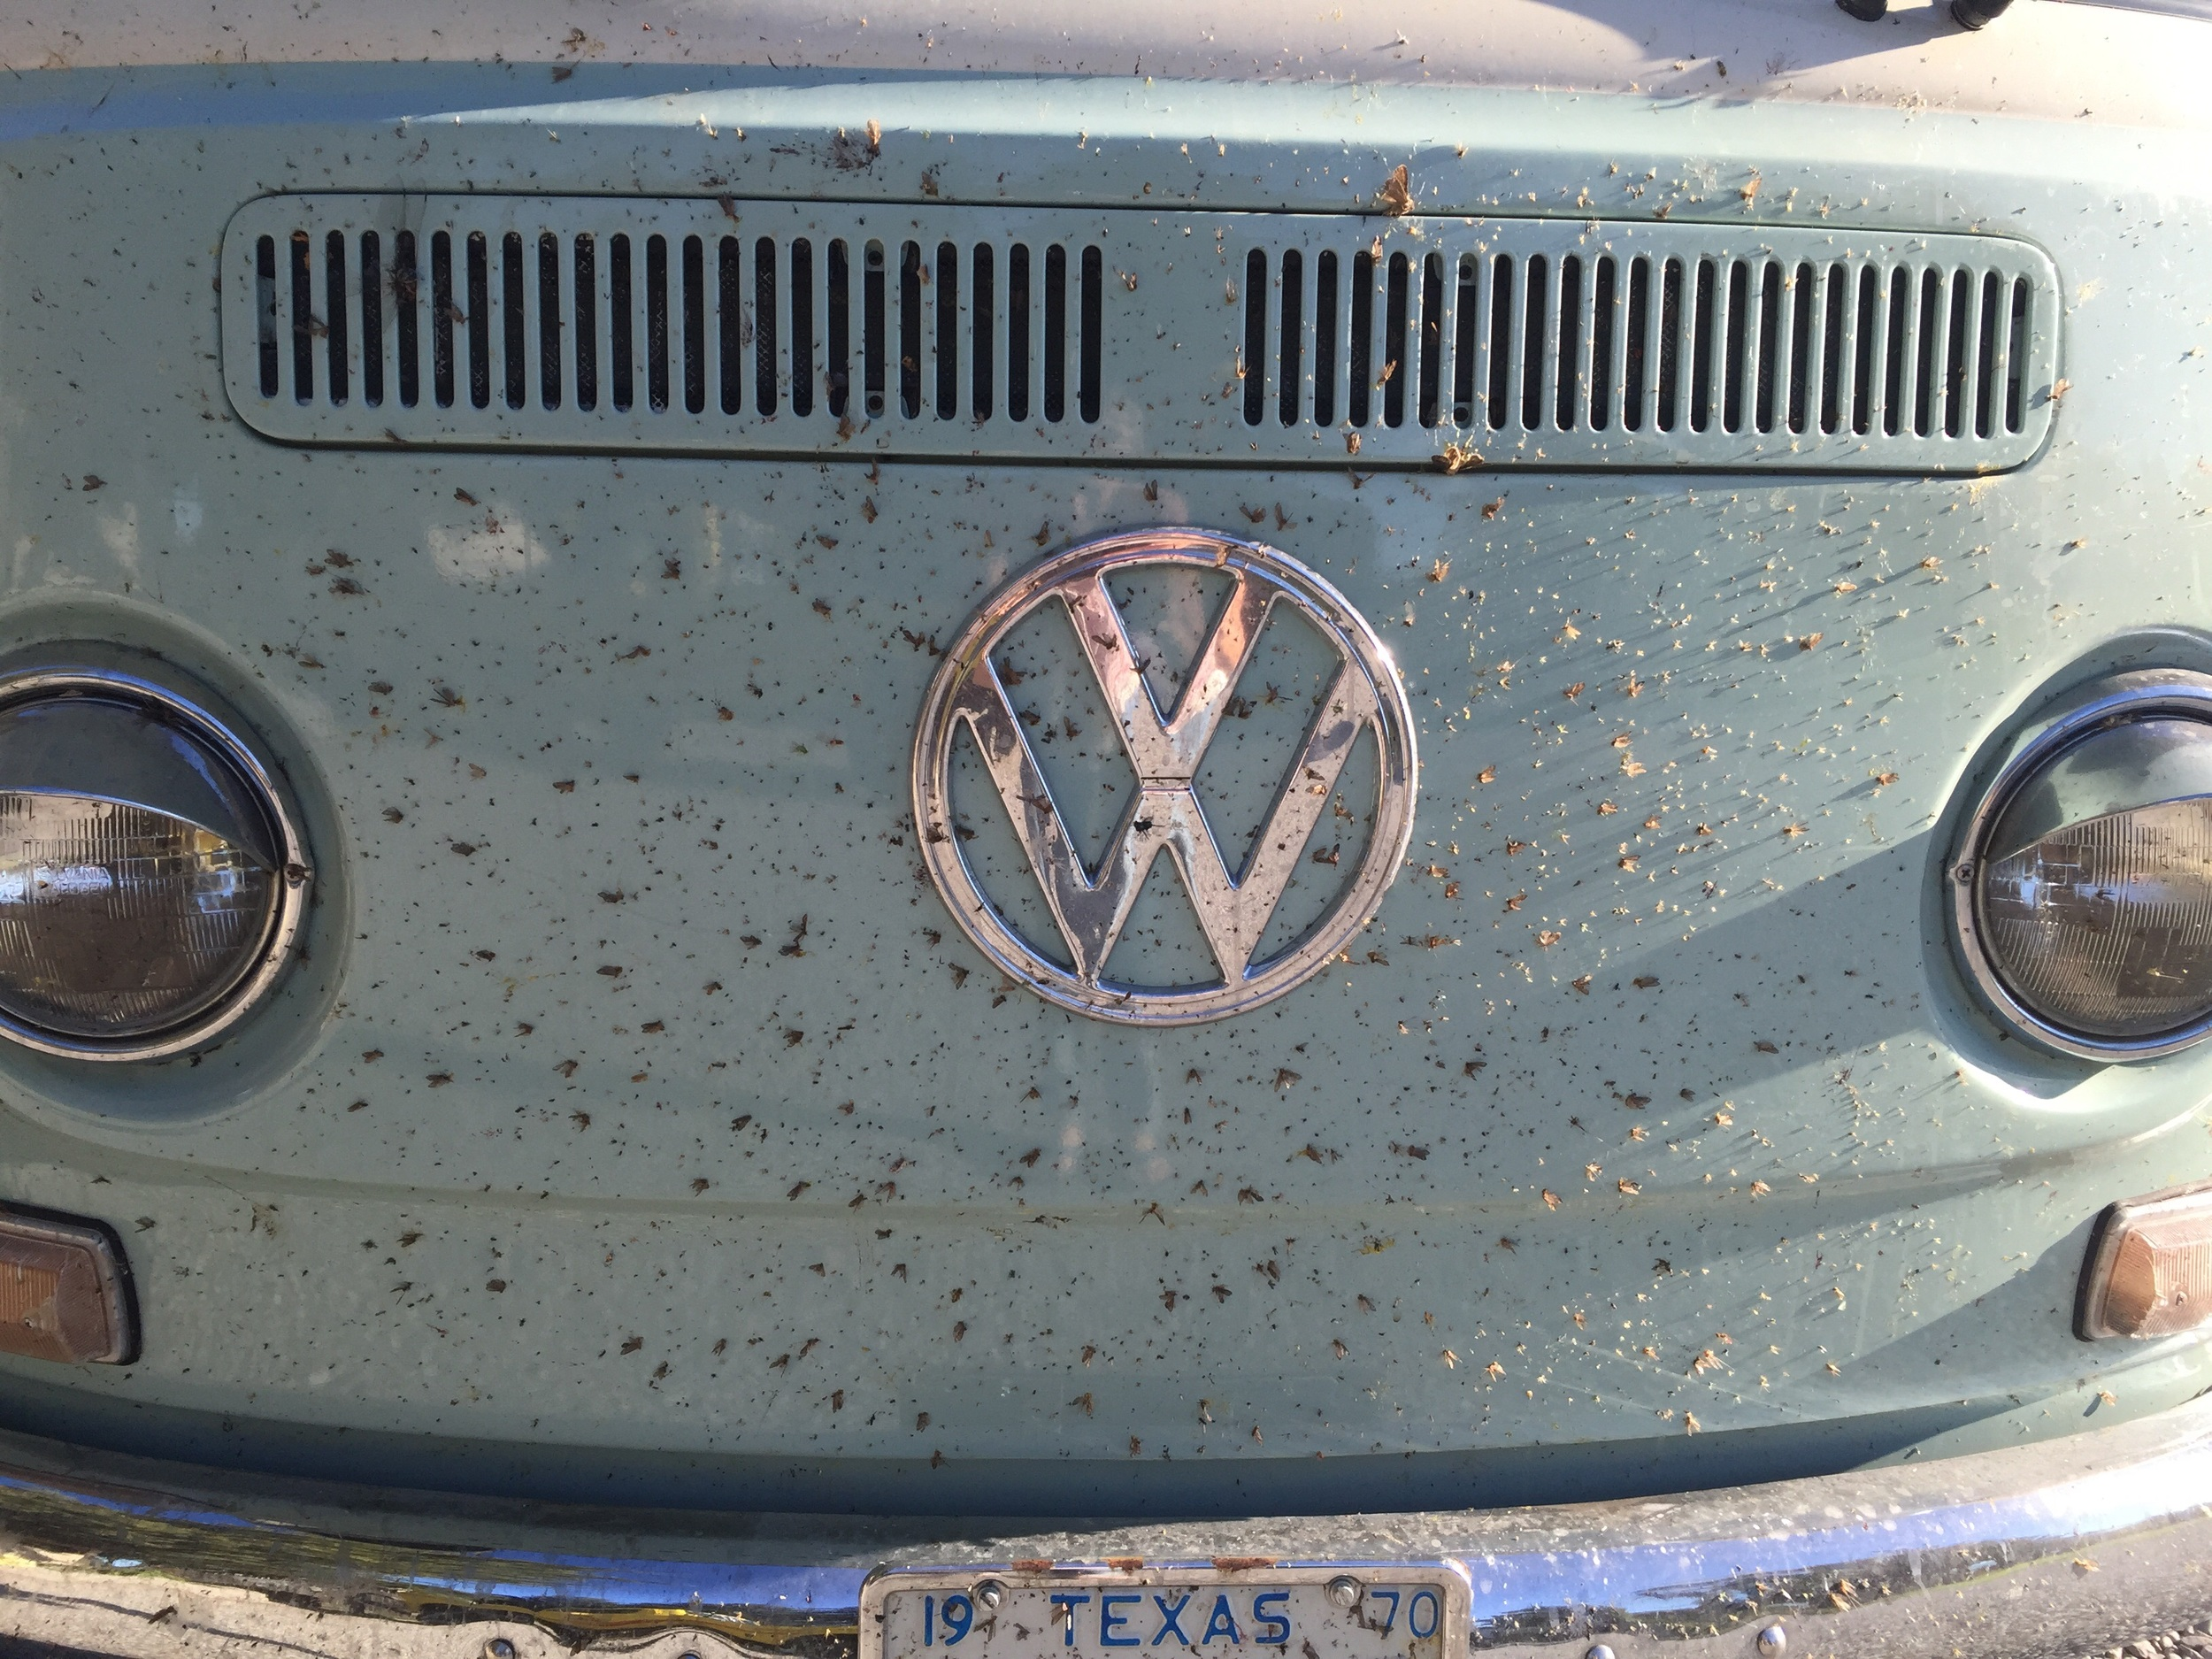 2,289 miles of bugs... right before the carwash in Port Angeles